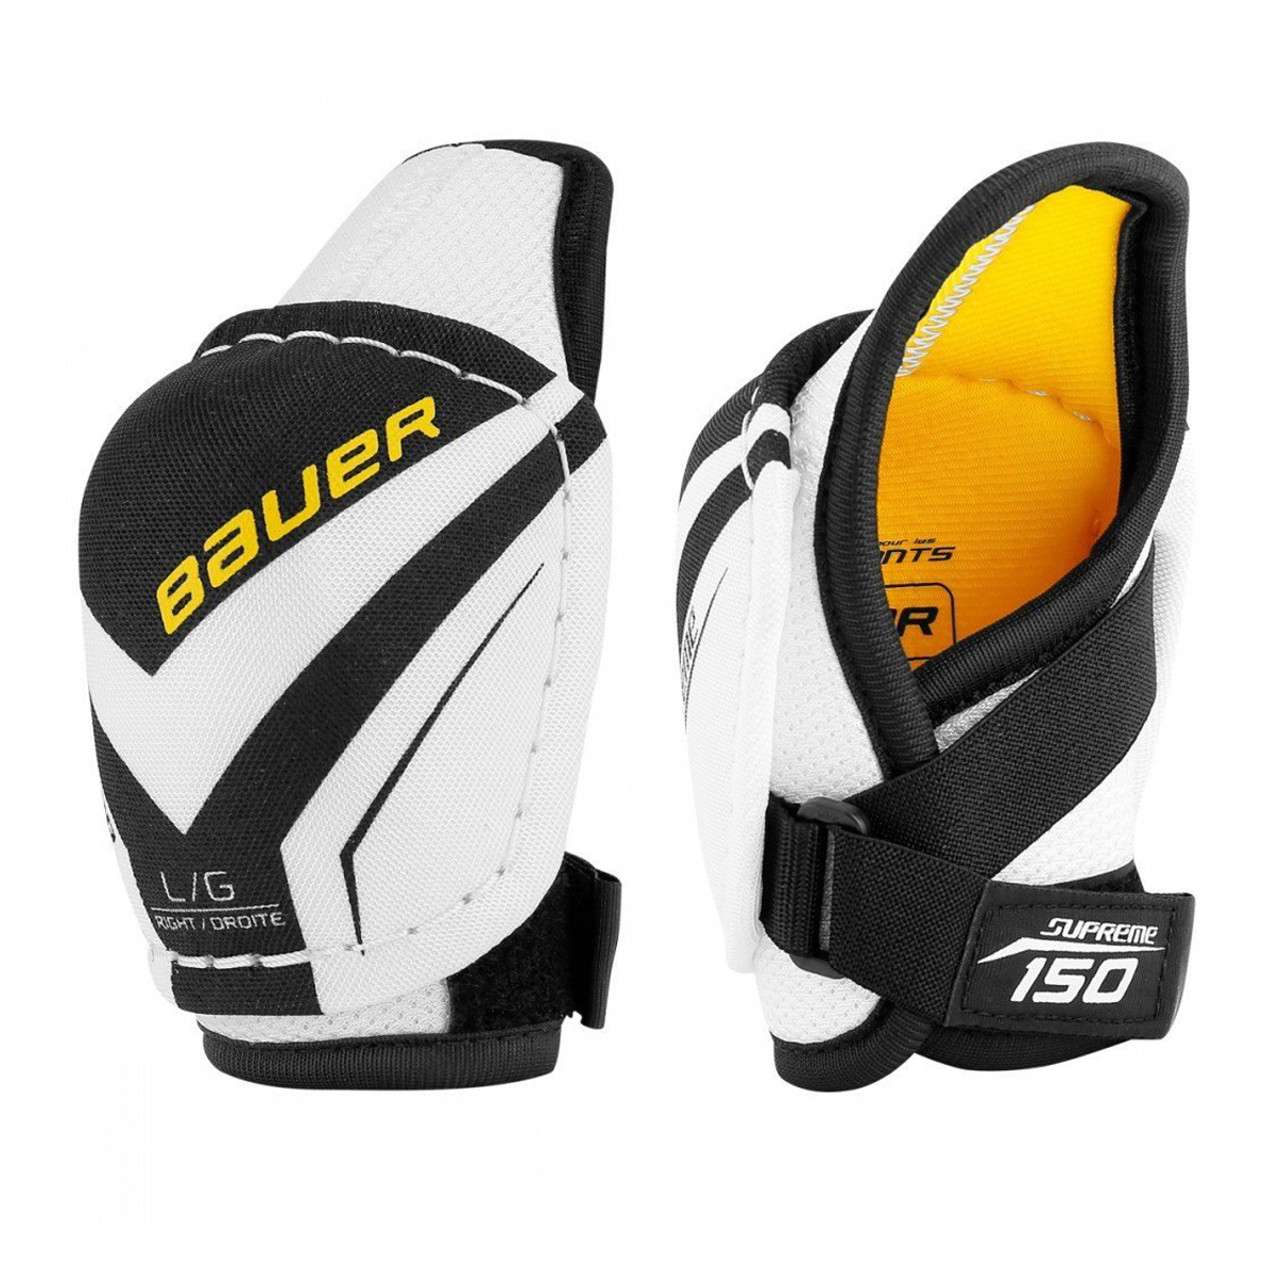 Bauer Supreme 150 Youth Hockey Elbow Pads